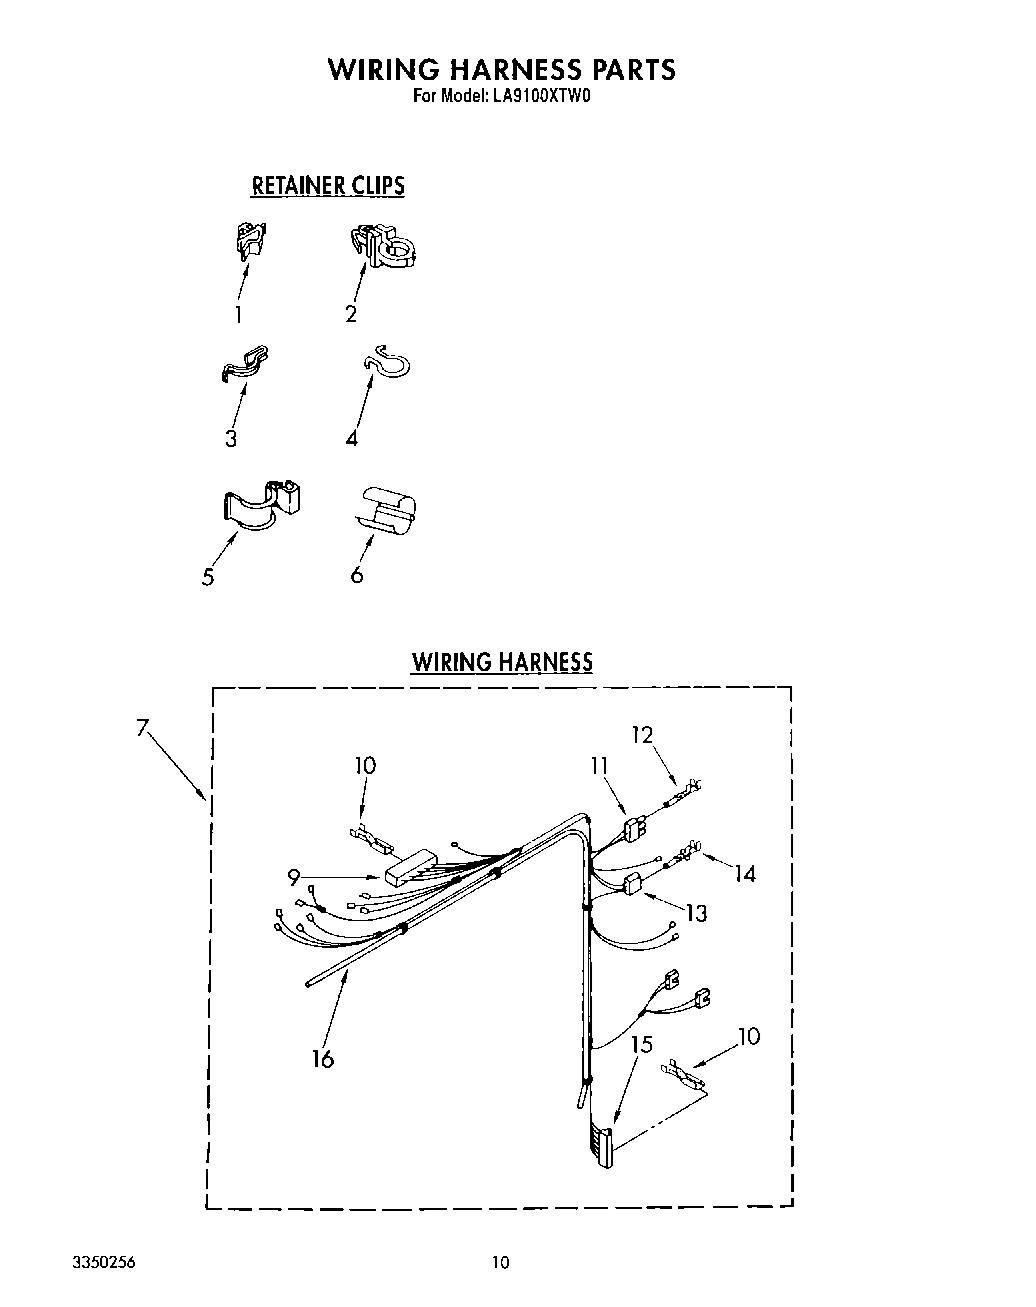 Wiring Harness Clip 90016 Diagram And Parts List For Maytag Washerparts Model Mvwc500vw1 Daves Repair Service New Albany Pennsylvania 570 363 2894 2002 Ford Mustang